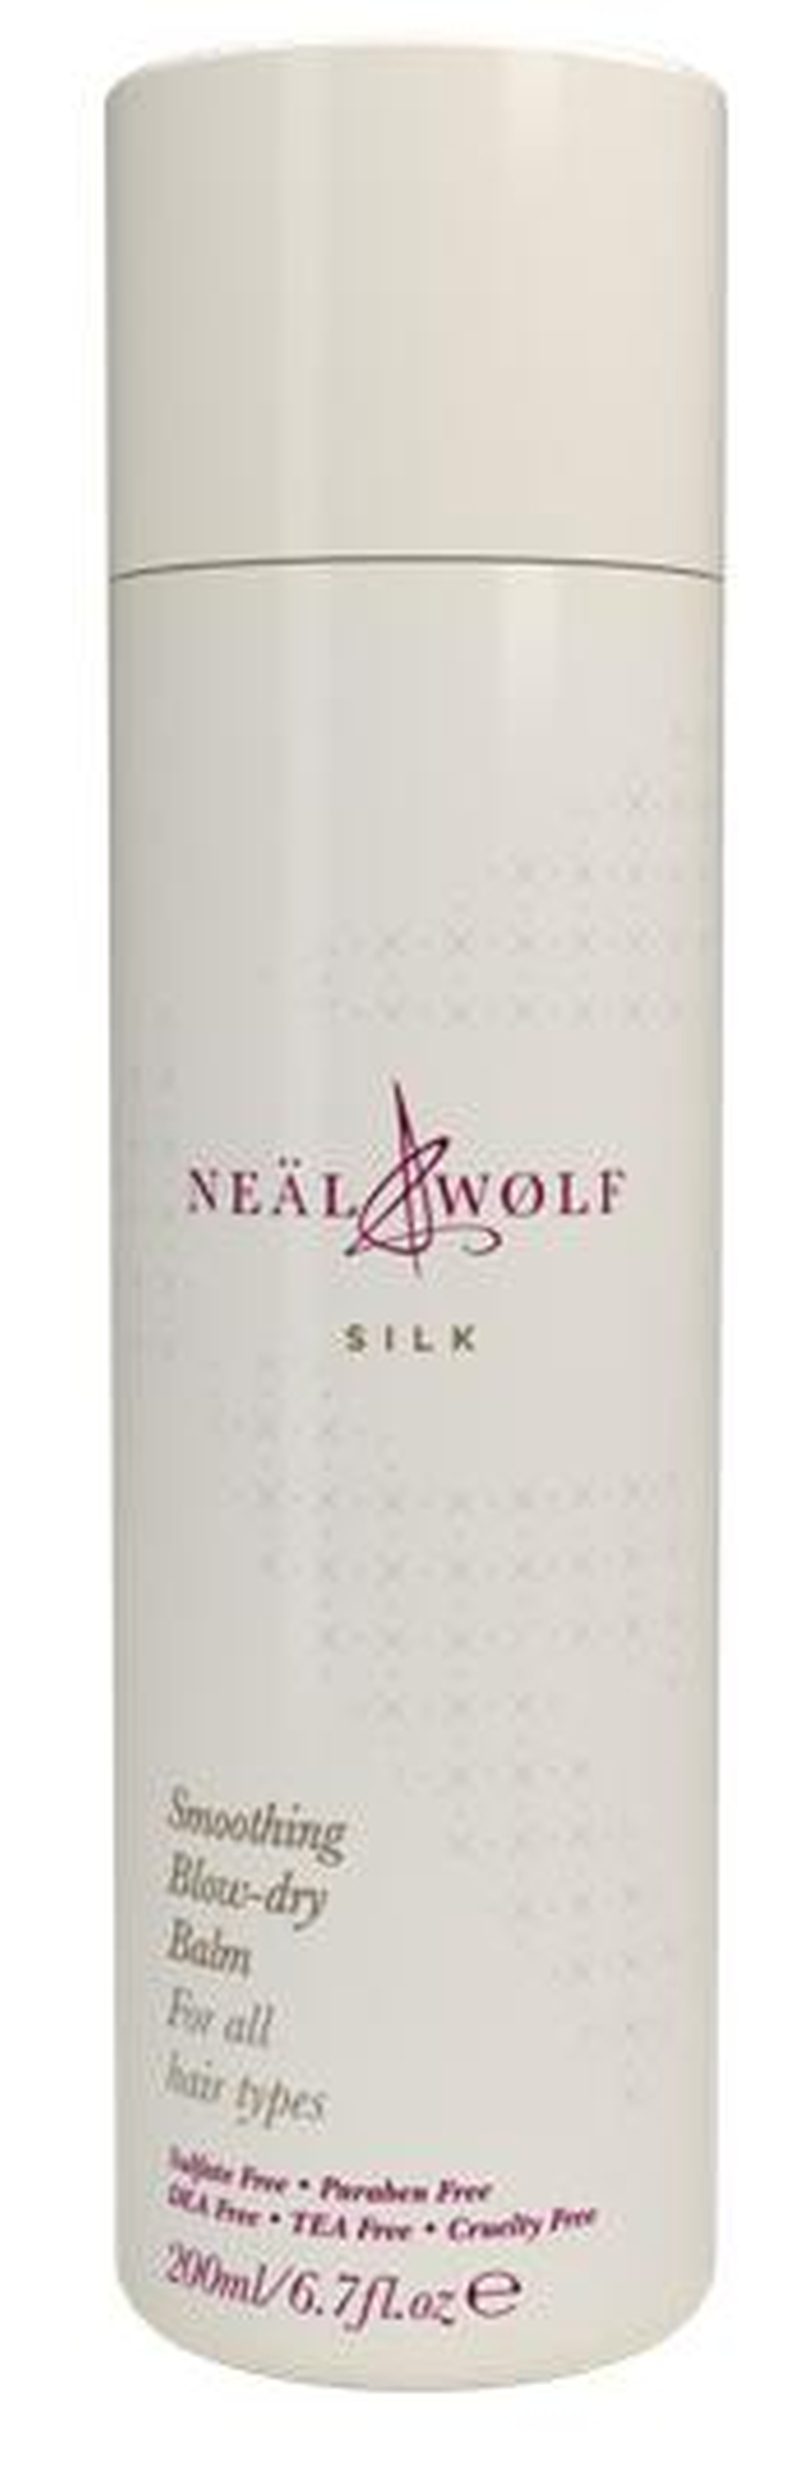 Neal and Wolf Silk Smoothing Blow-dry Balm 200ml